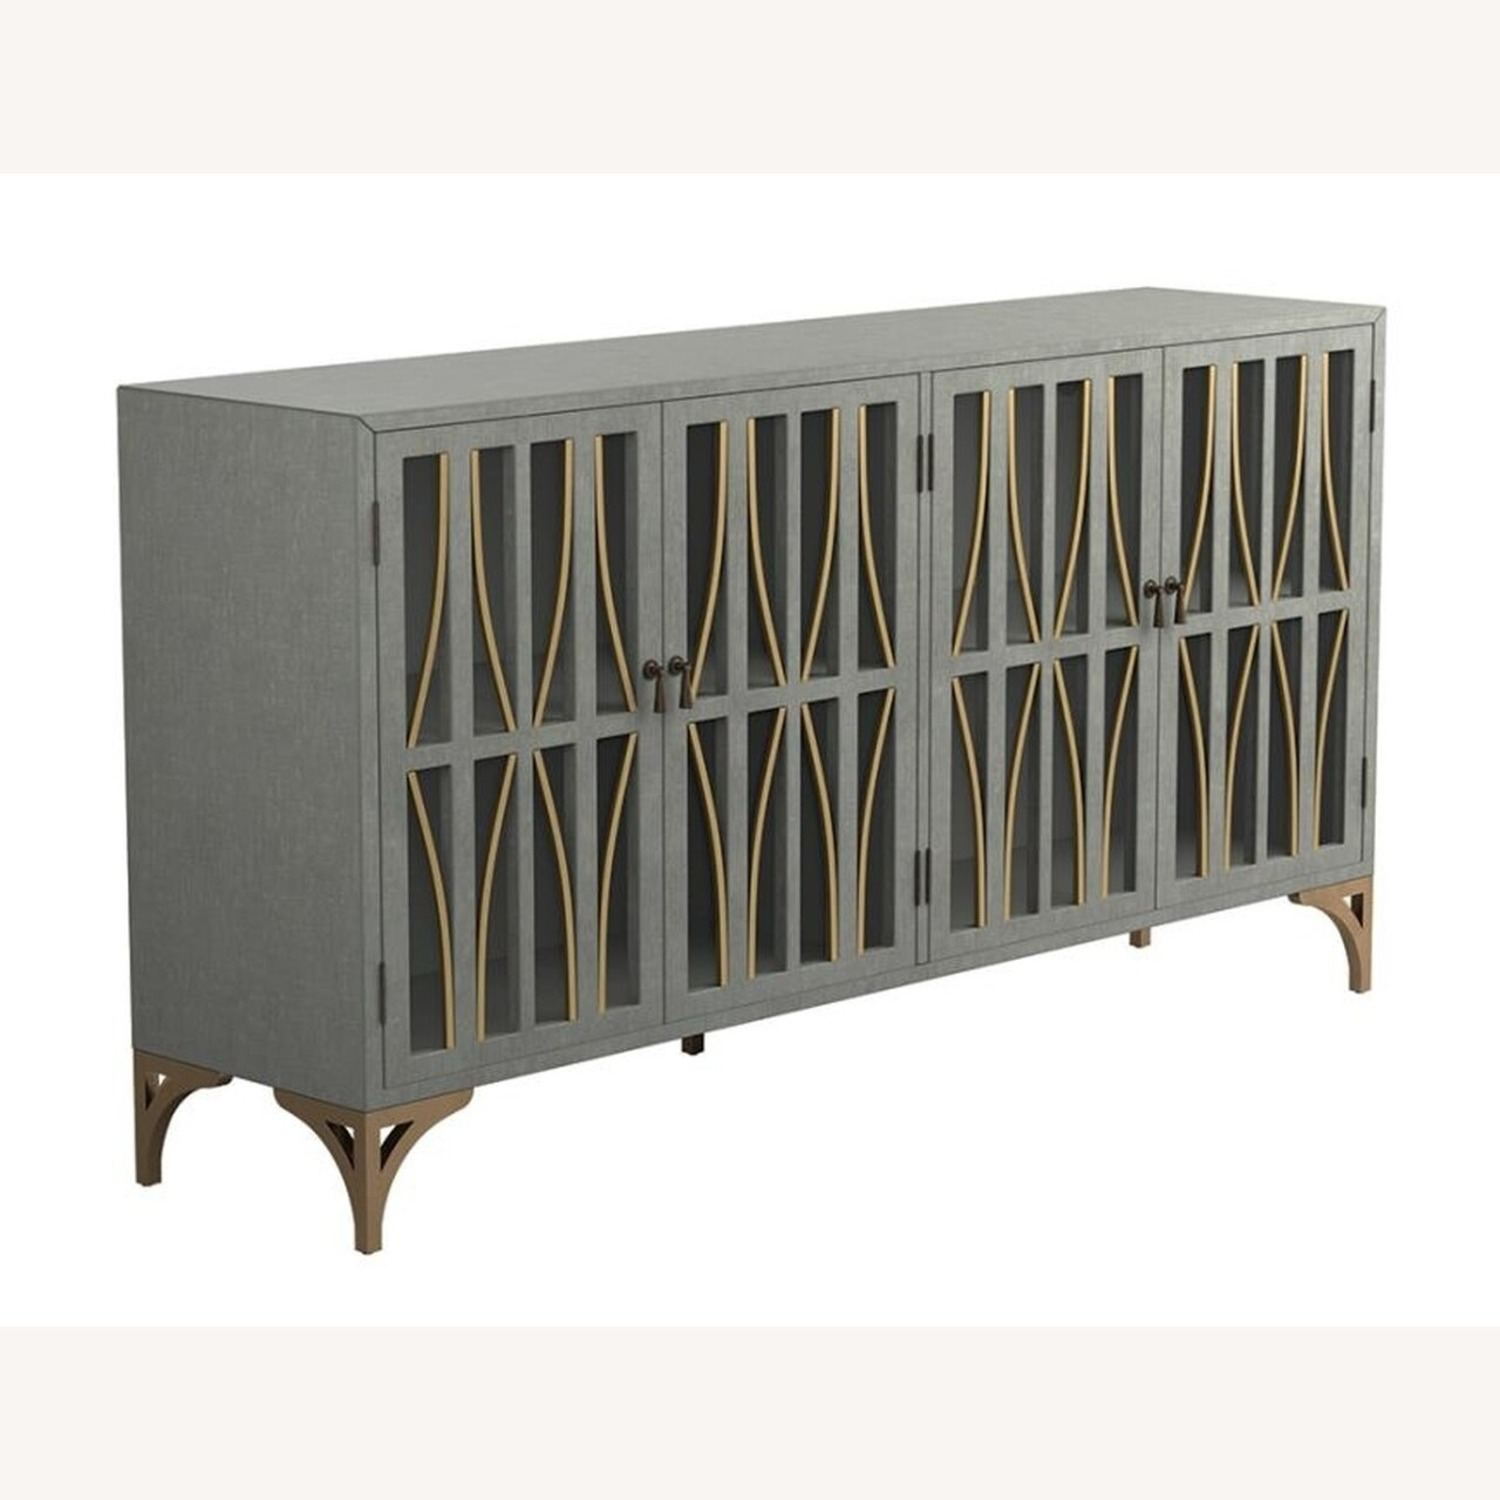 Contemporary Accent Cabinet In Grey Green Finish - image-0